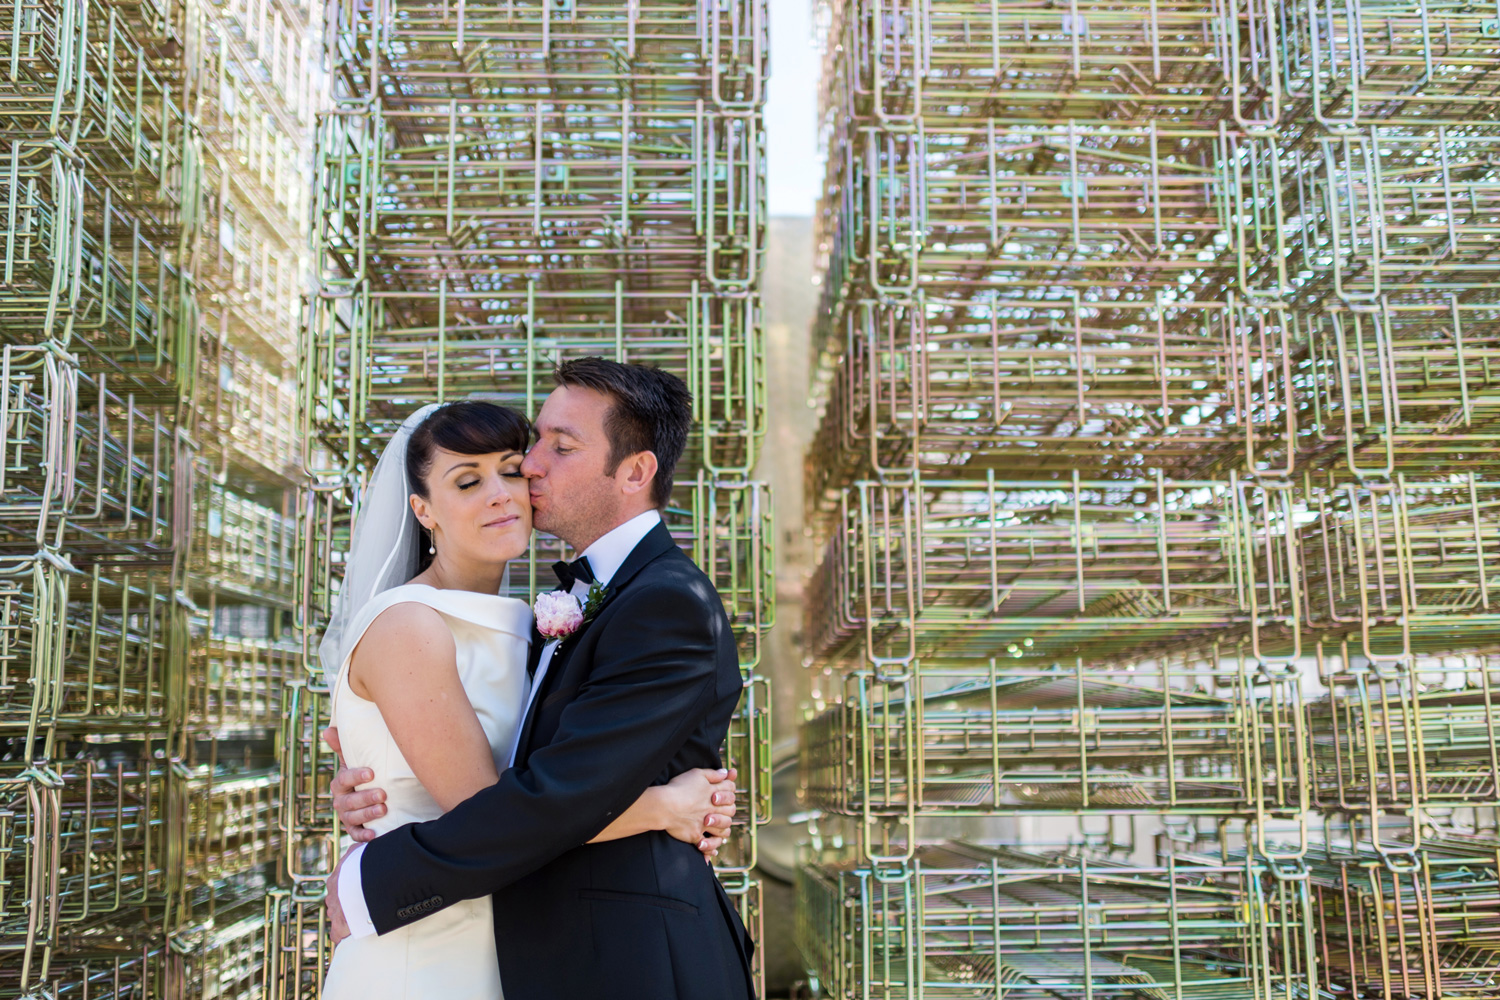 cool portrait of bride and groom